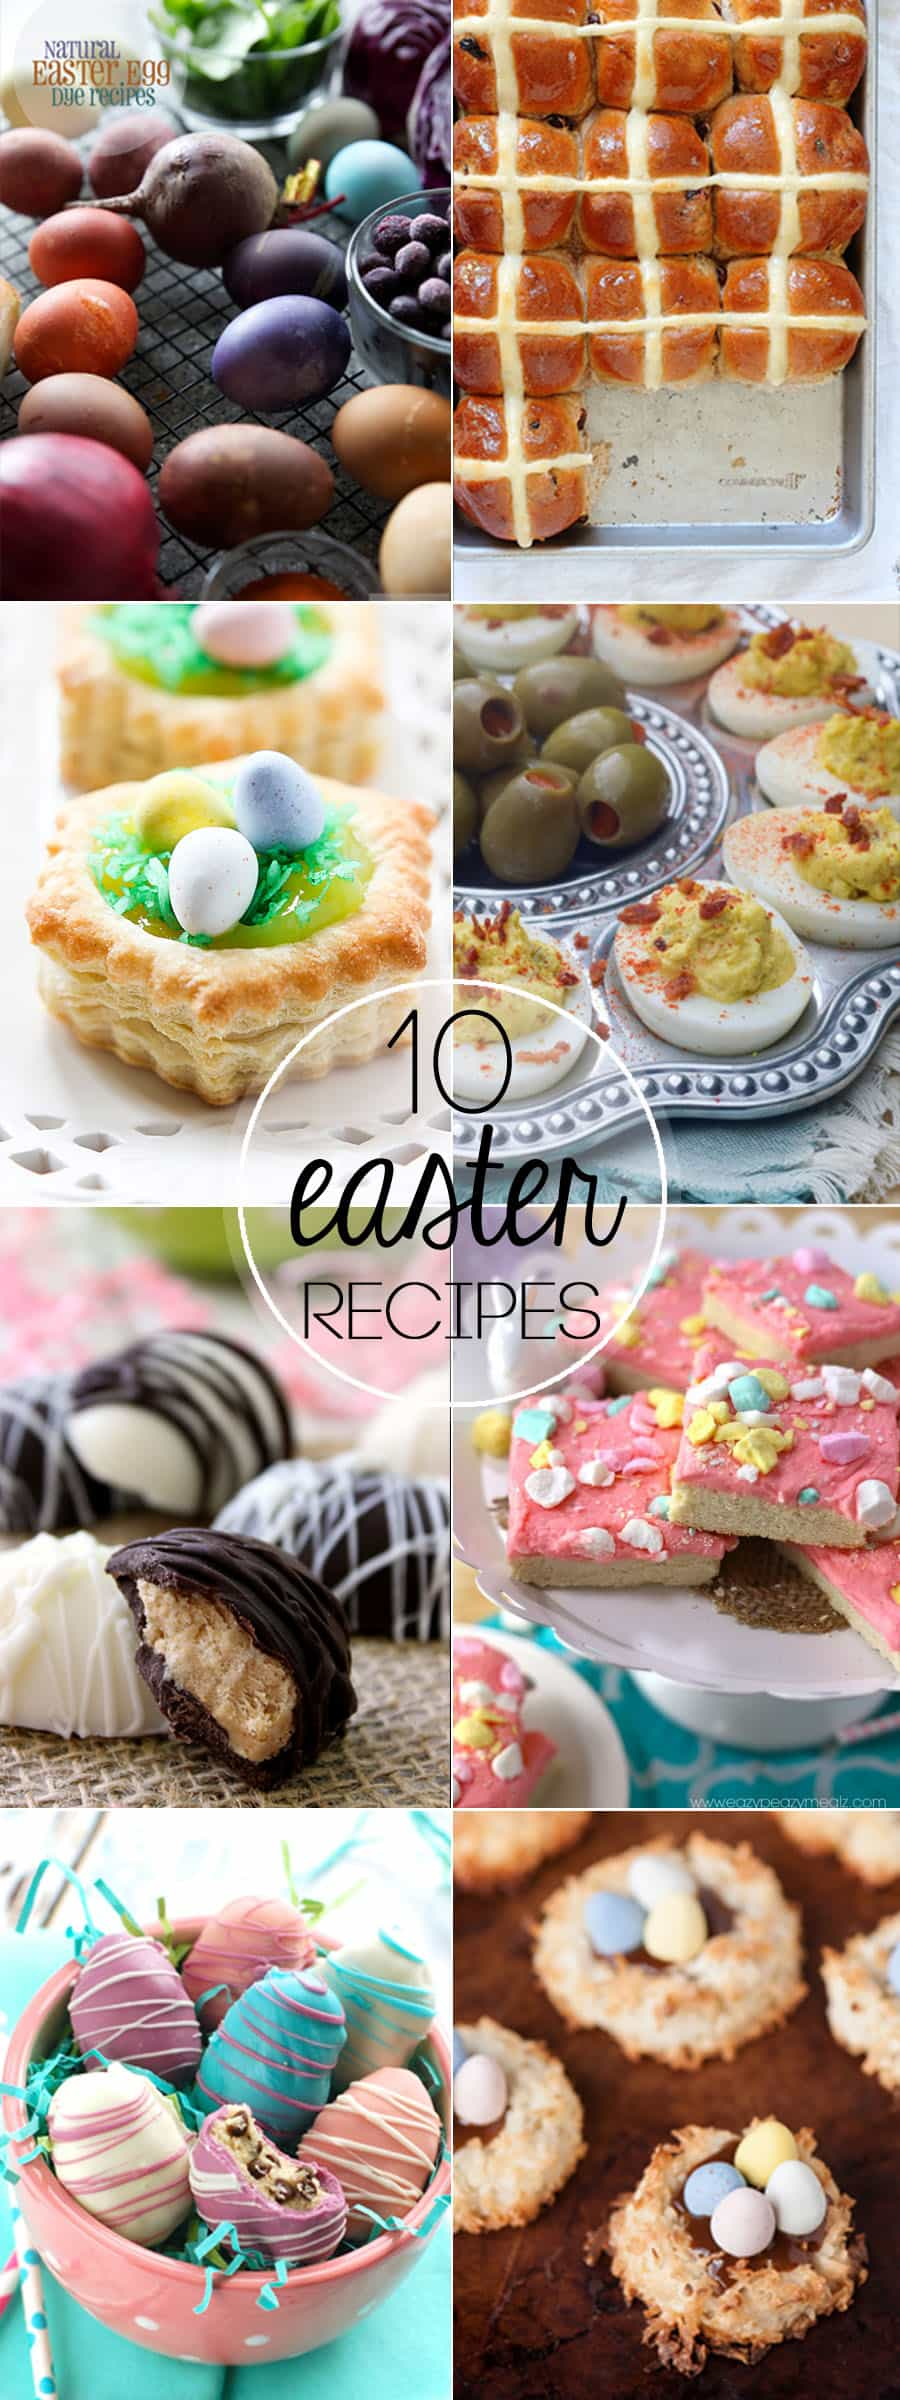 Celebrate Spring with these 10 Recipes Perfect for Easter. From natural Easter egg dye, to deviled eggs, to sweet treats, make this Easter fabulous!